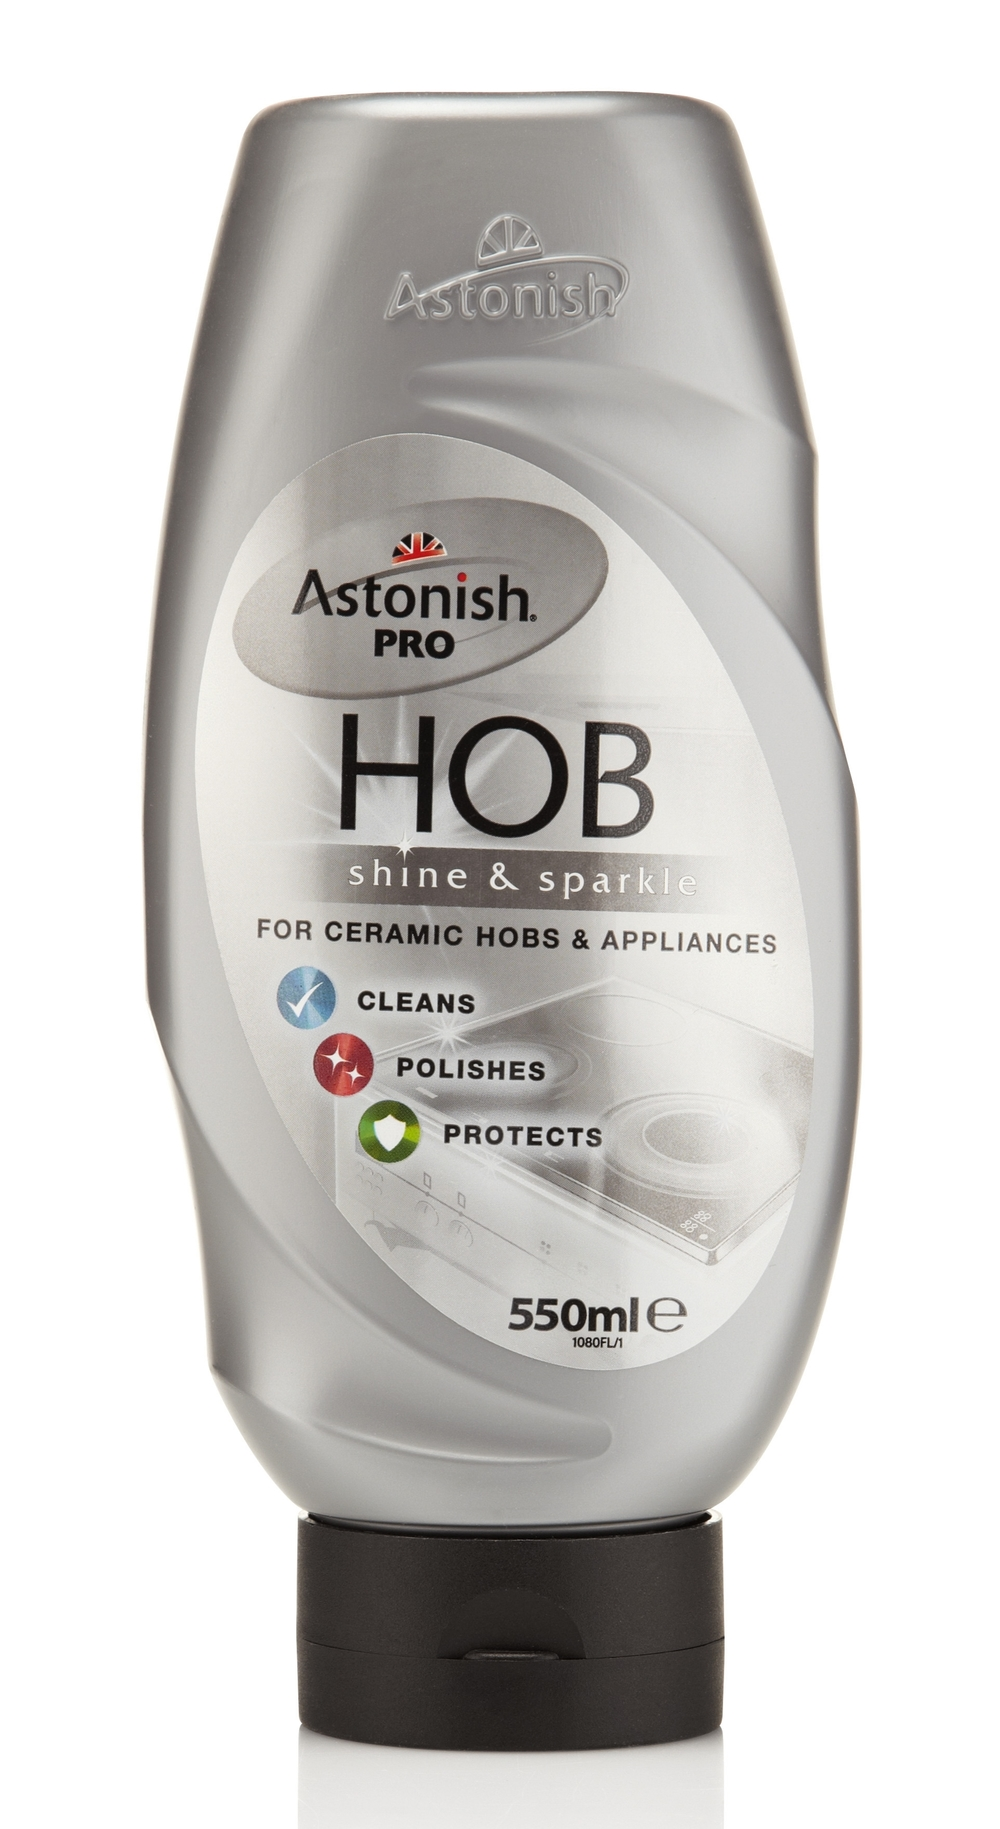 Astonish Pro Hob Shine & Sparkle 550ml.JPG